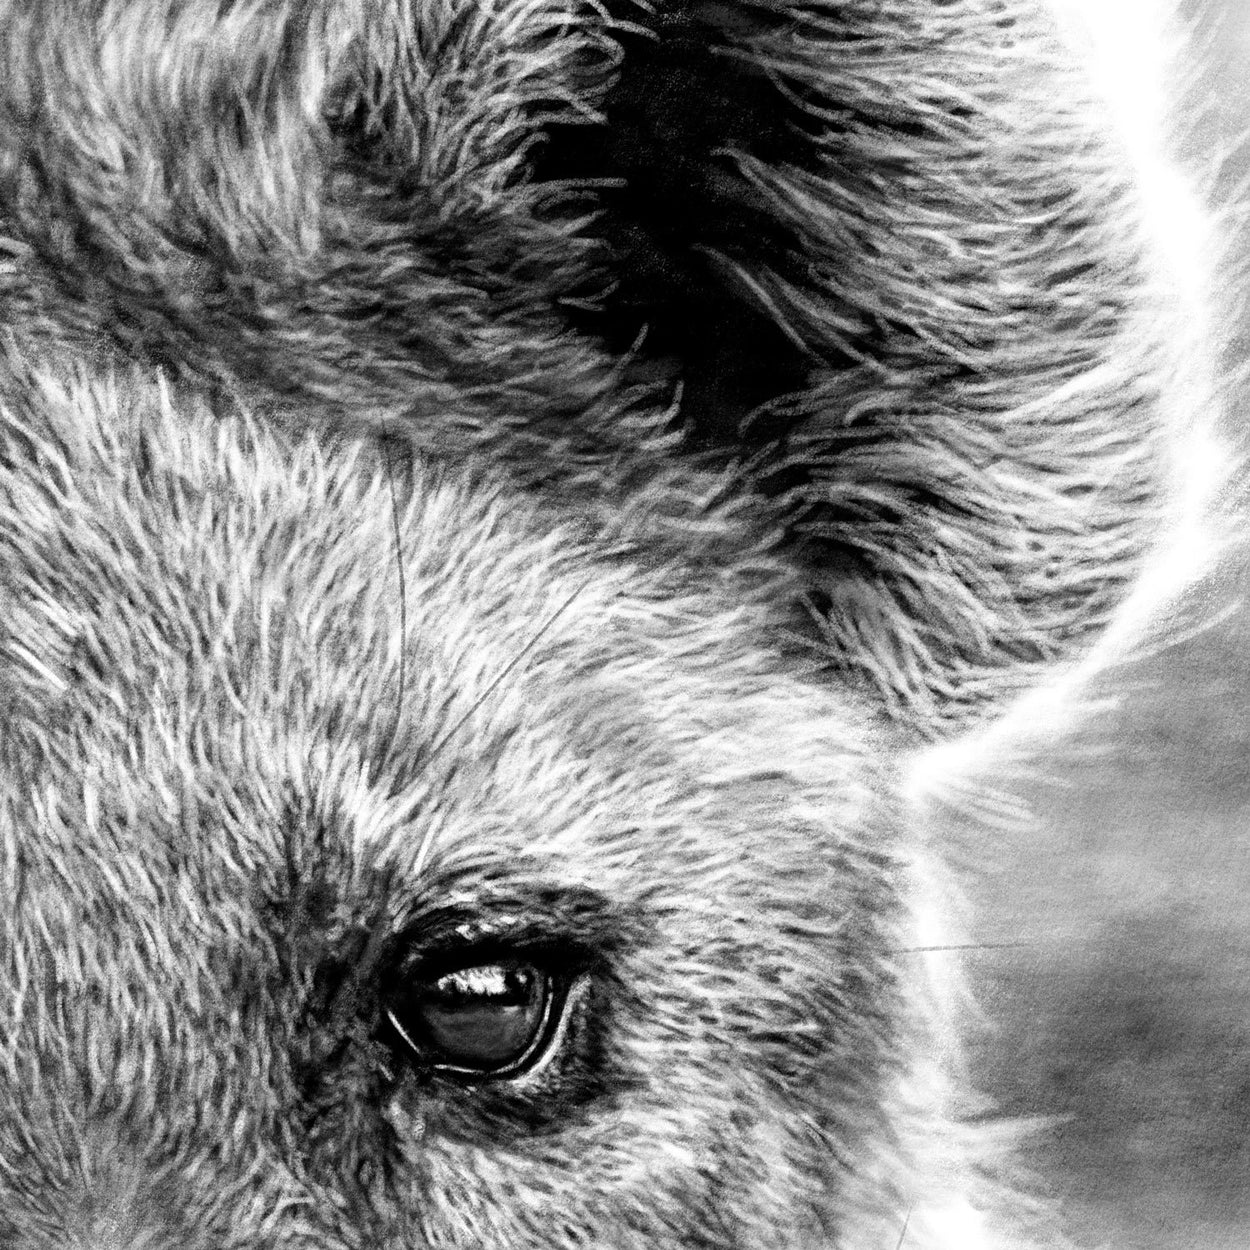 Hyena Drawing Close-up - The Thriving Wild